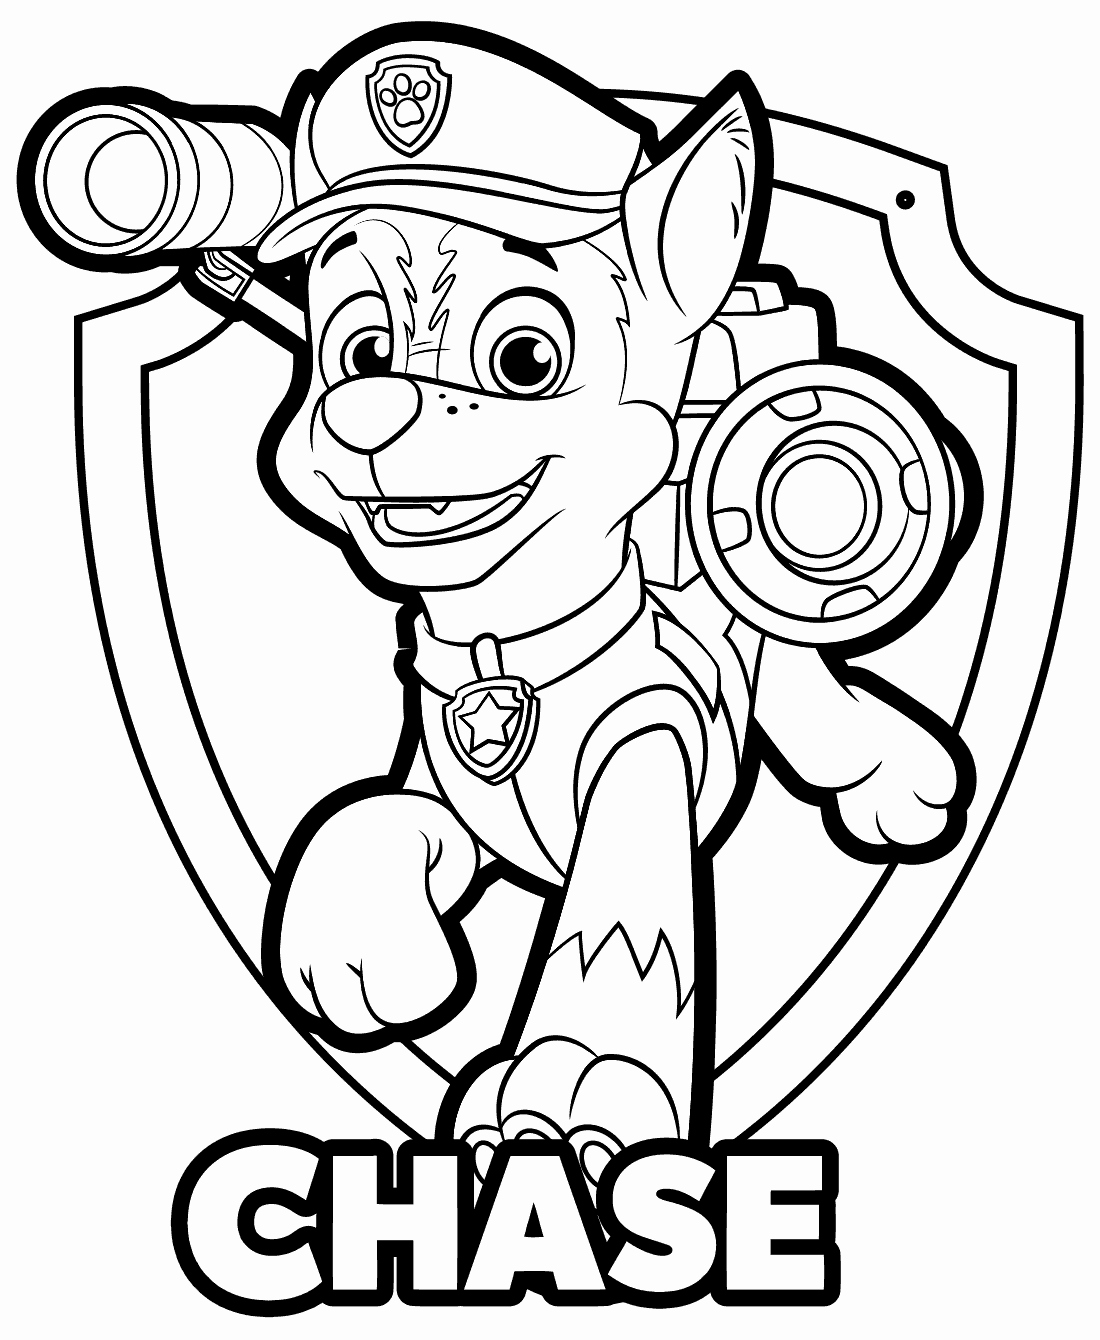 paw patrol coloring pages paw patrol coloring pages coloring pages to download and coloring patrol pages paw